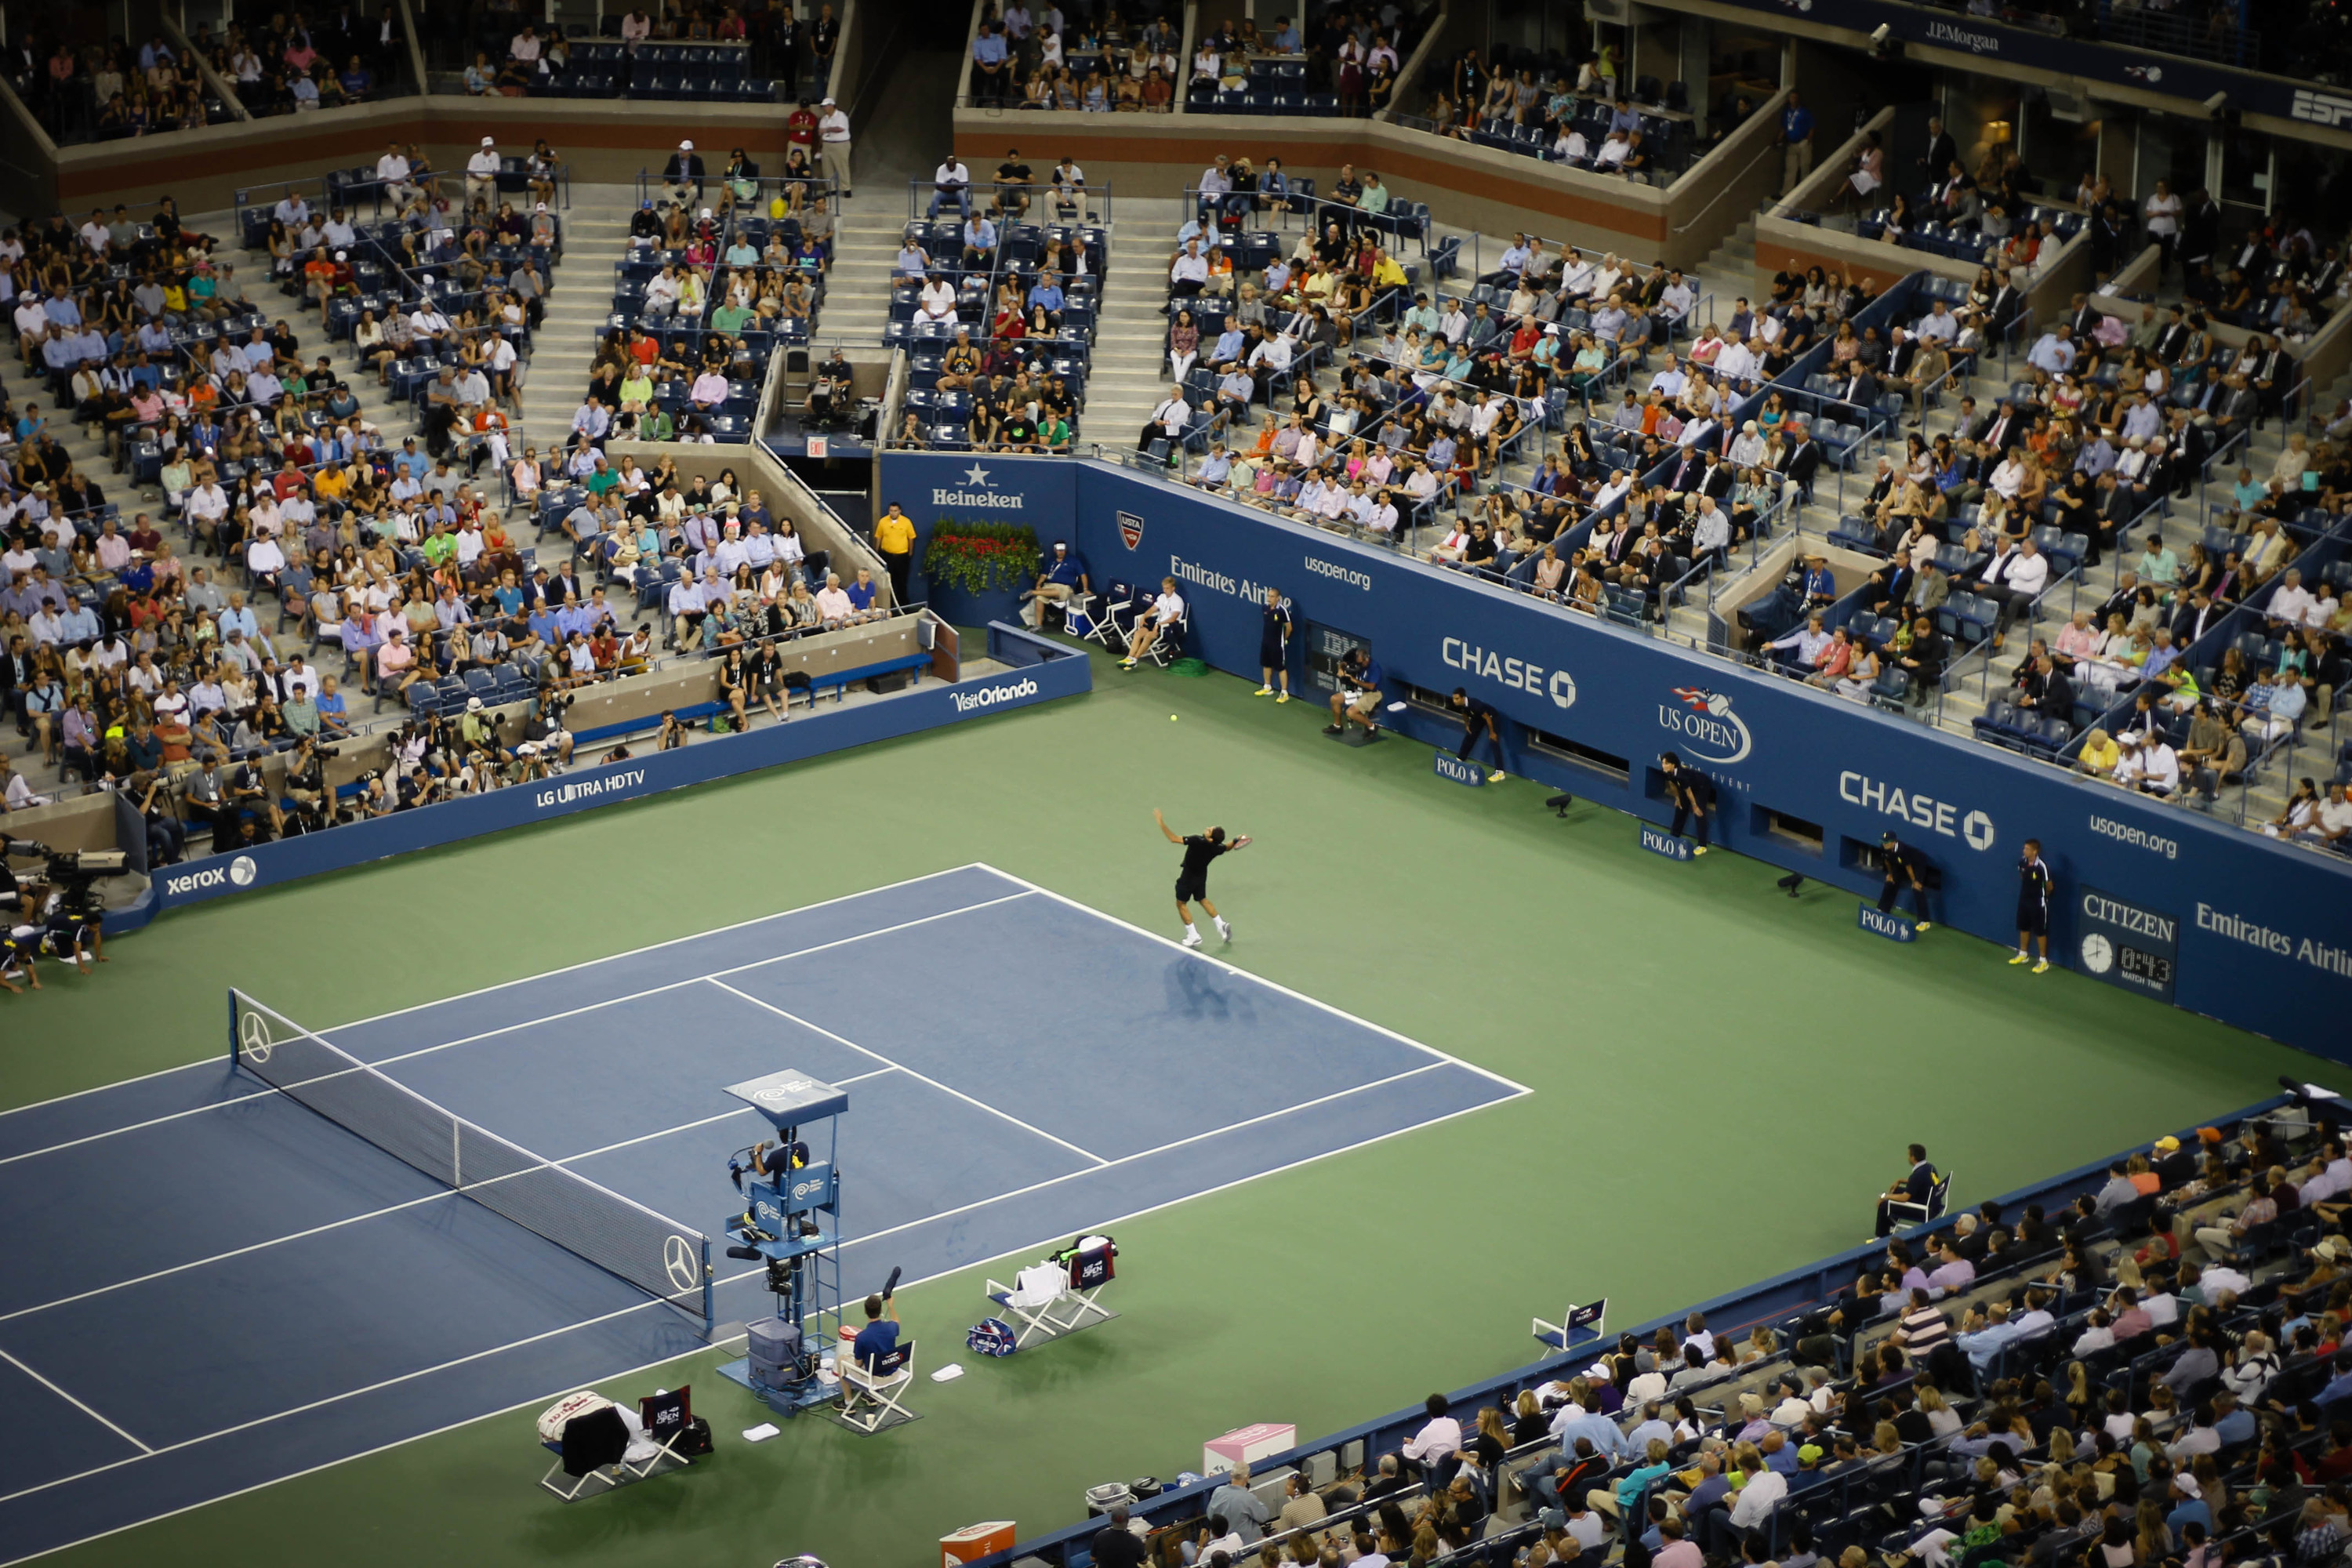 Here's what you can get up to at the U.S. Open (2014)